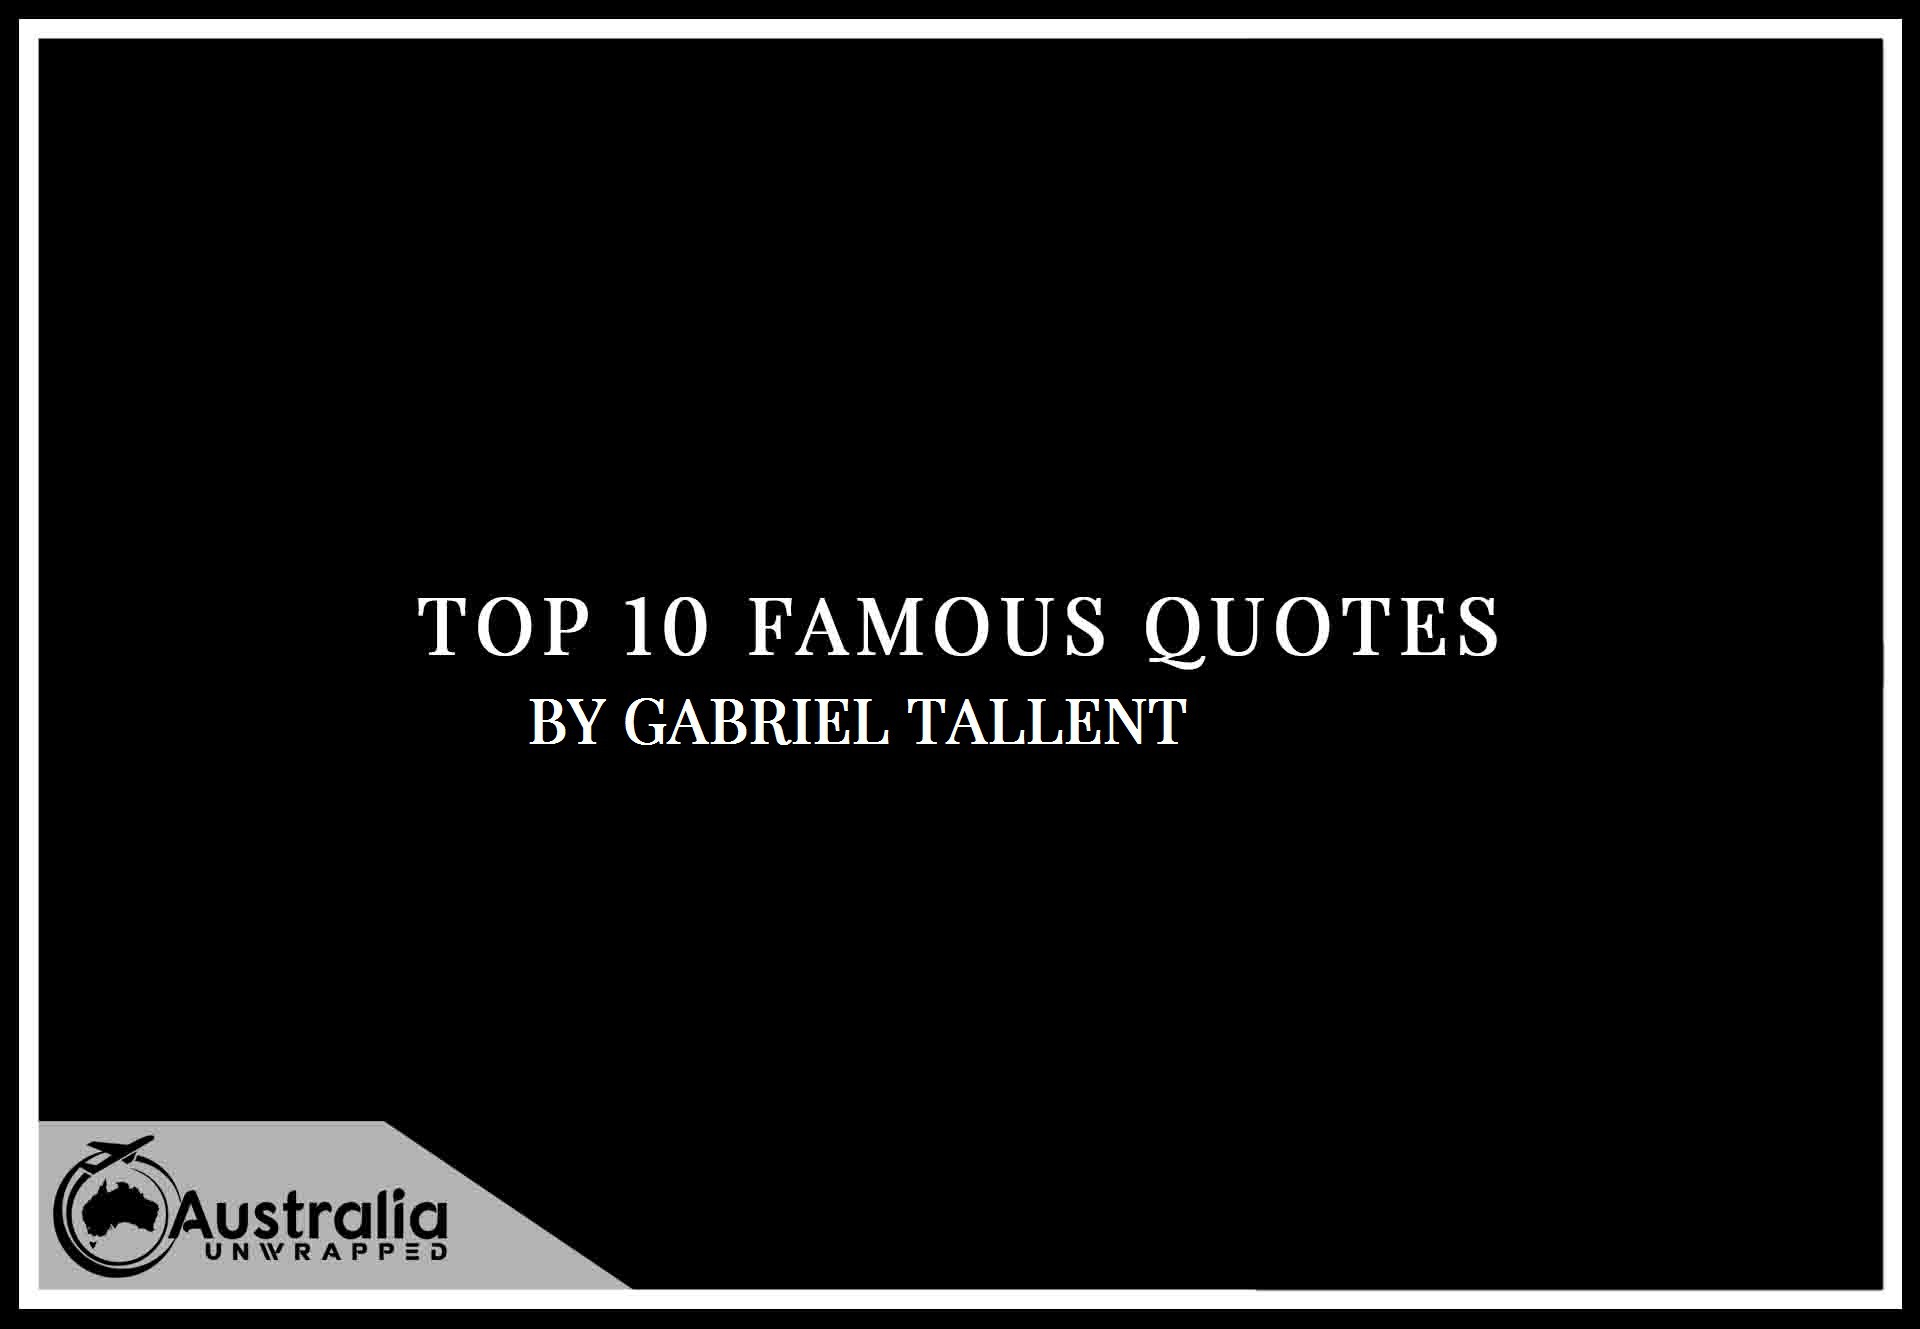 Gabriel Tallent's Top 10 Popular and Famous Quotes